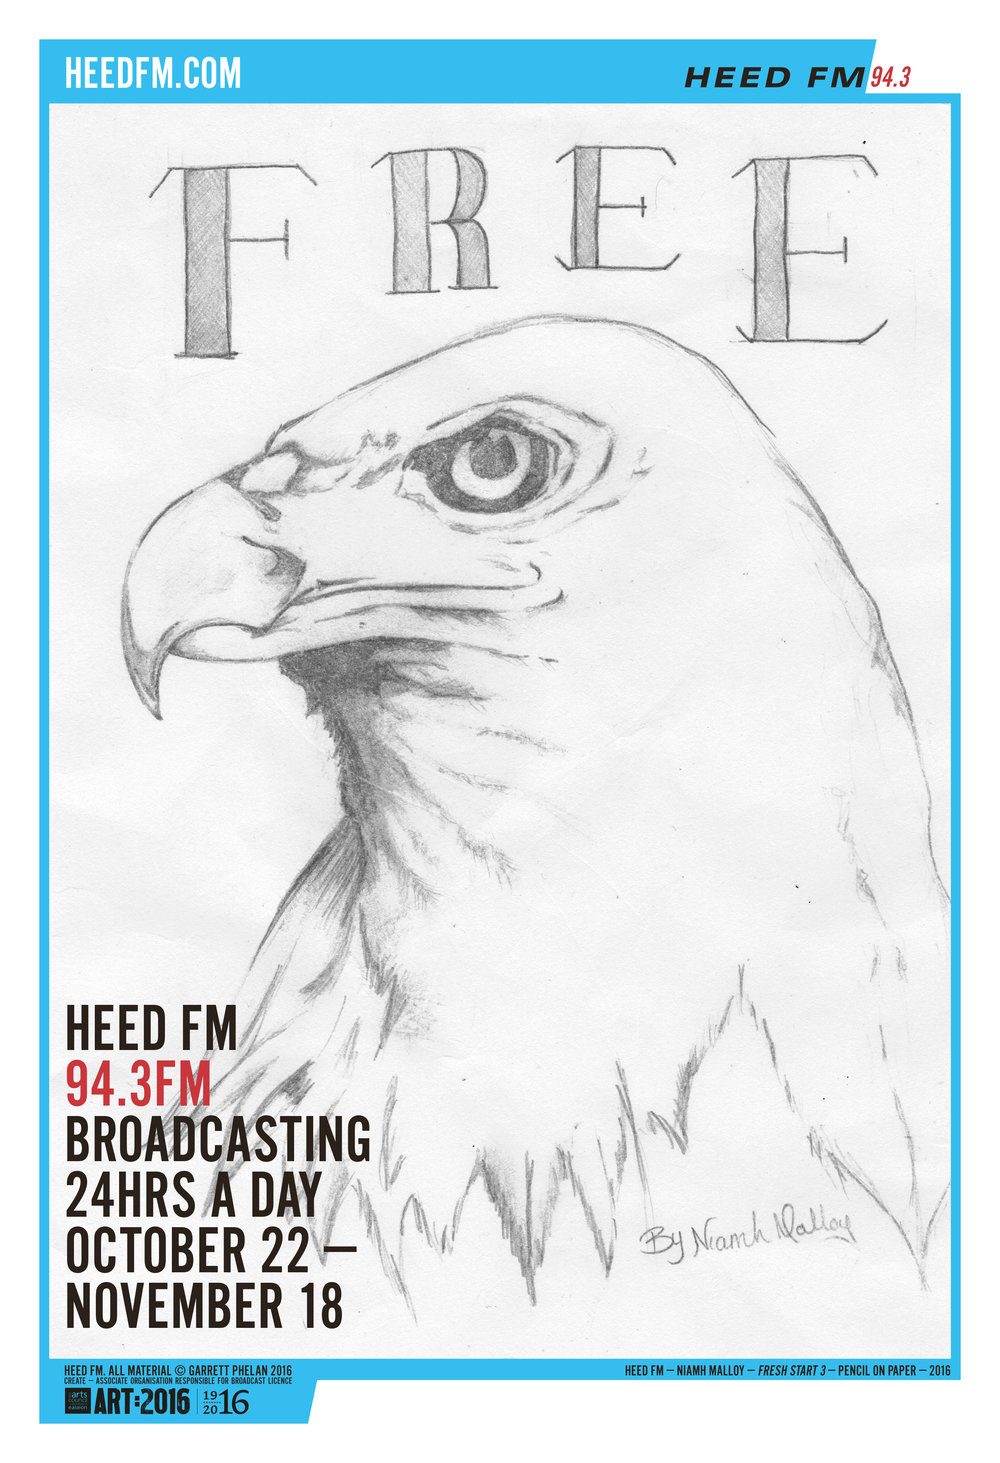 heed fm 4 sheets artwork-26.jpg